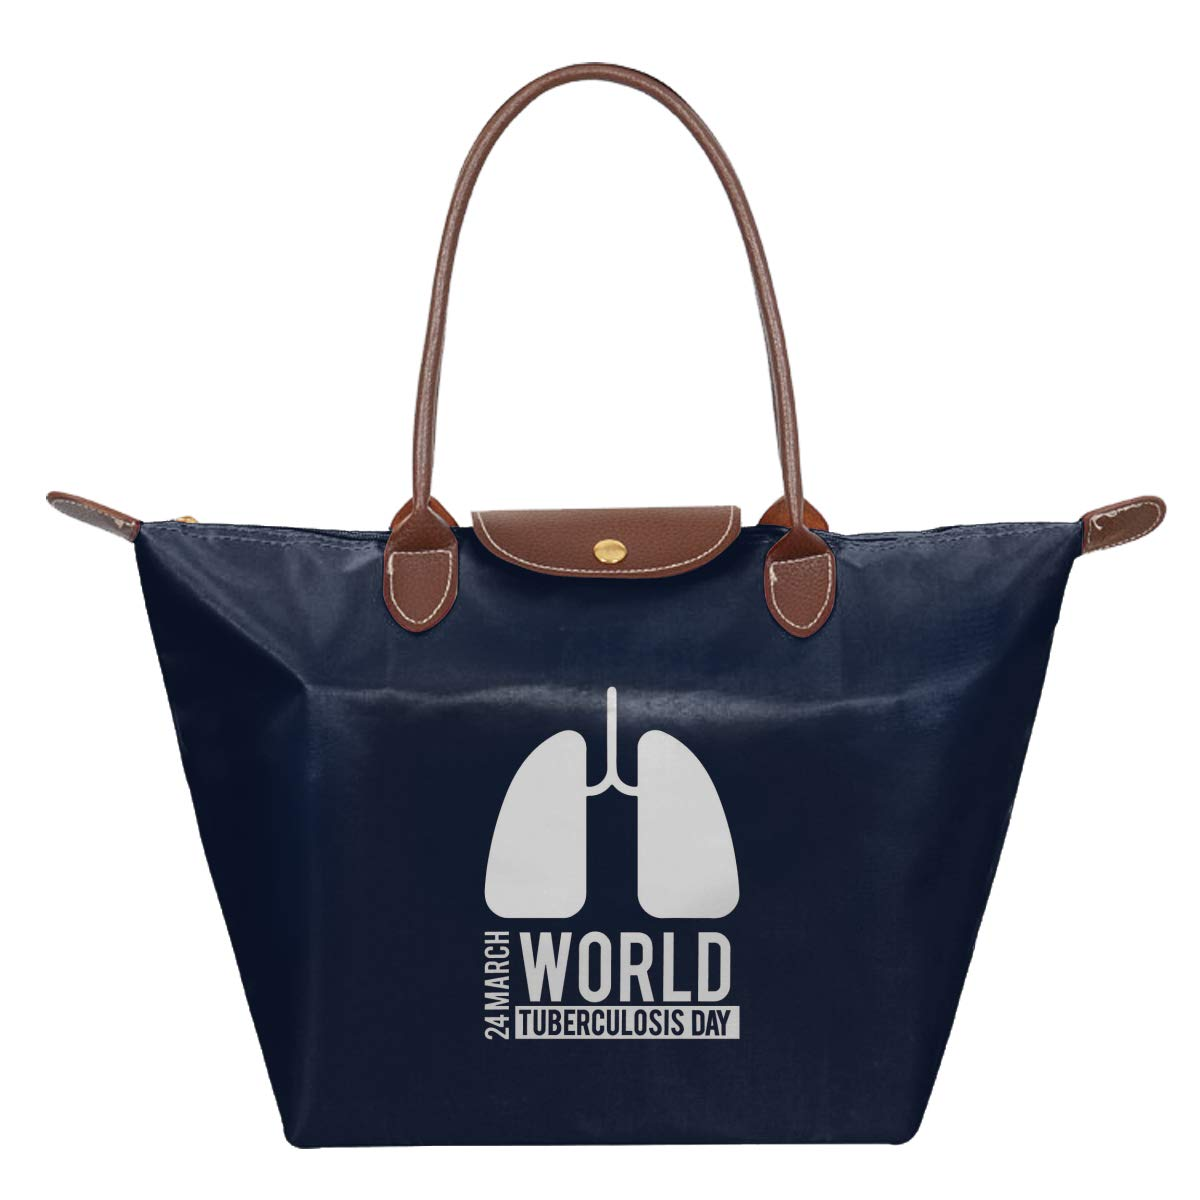 World Tuberculosis Day World TB Day Waterproof Leather Folded Messenger Nylon Bag Travel Tote Hopping Folding School Handbags